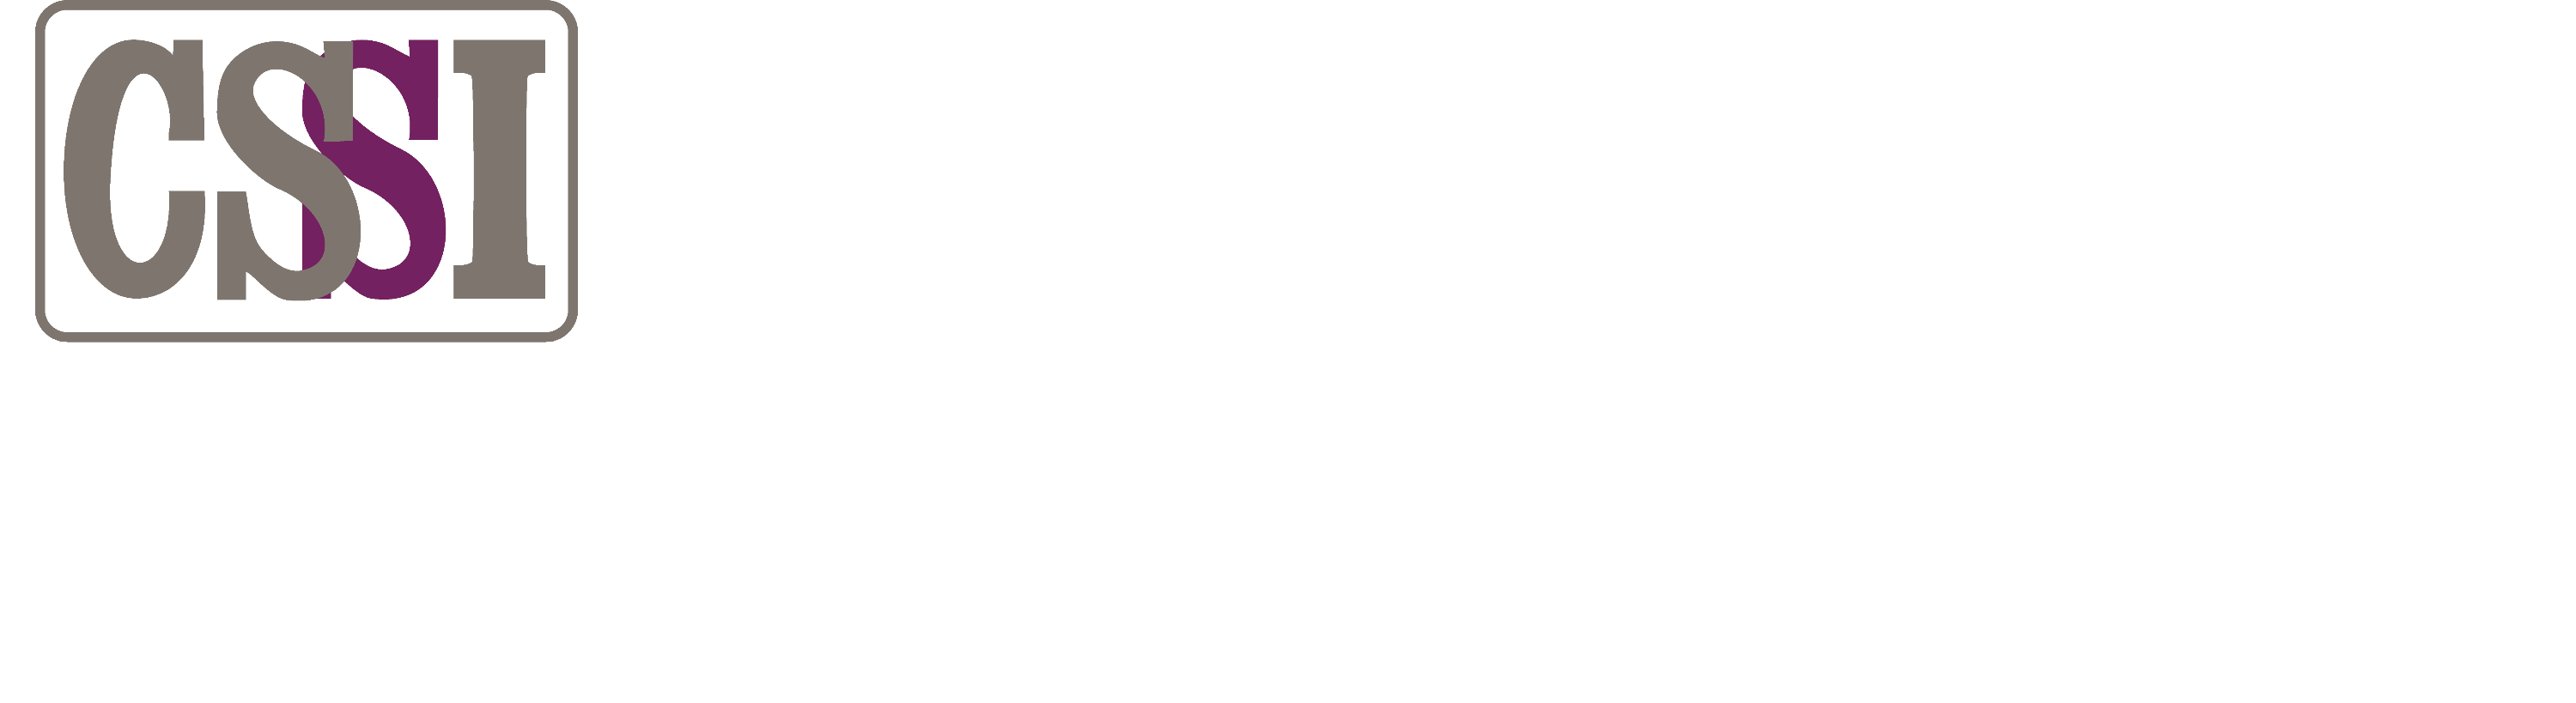 Construction Systems Software, Inc.